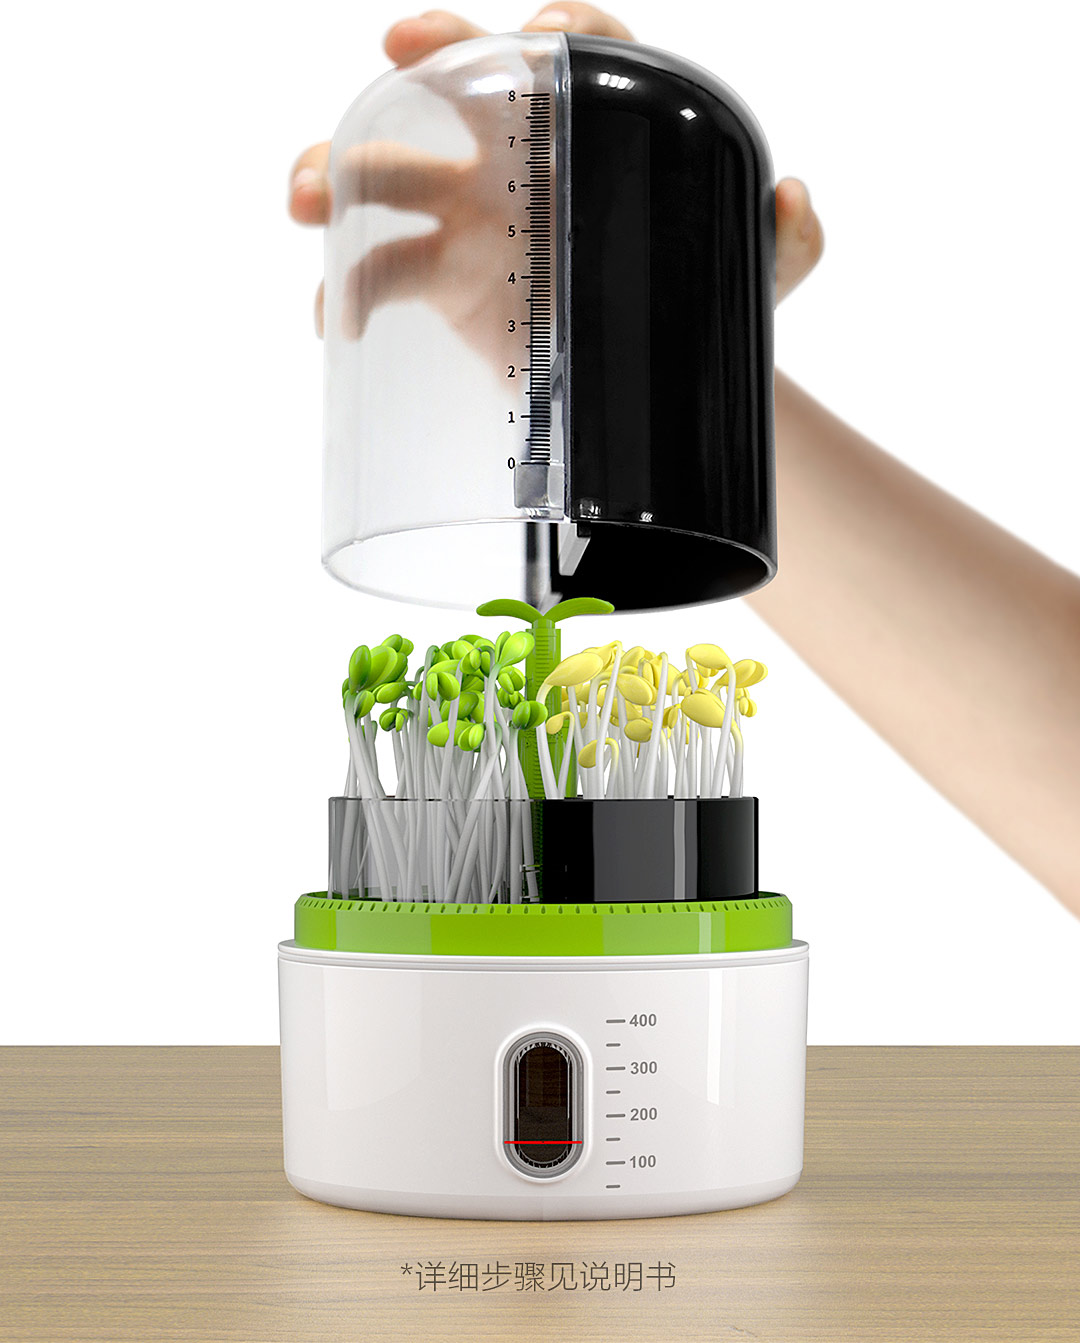 Xiaomi grow cabin, the latest for sale on Youpin - Xiaomi News